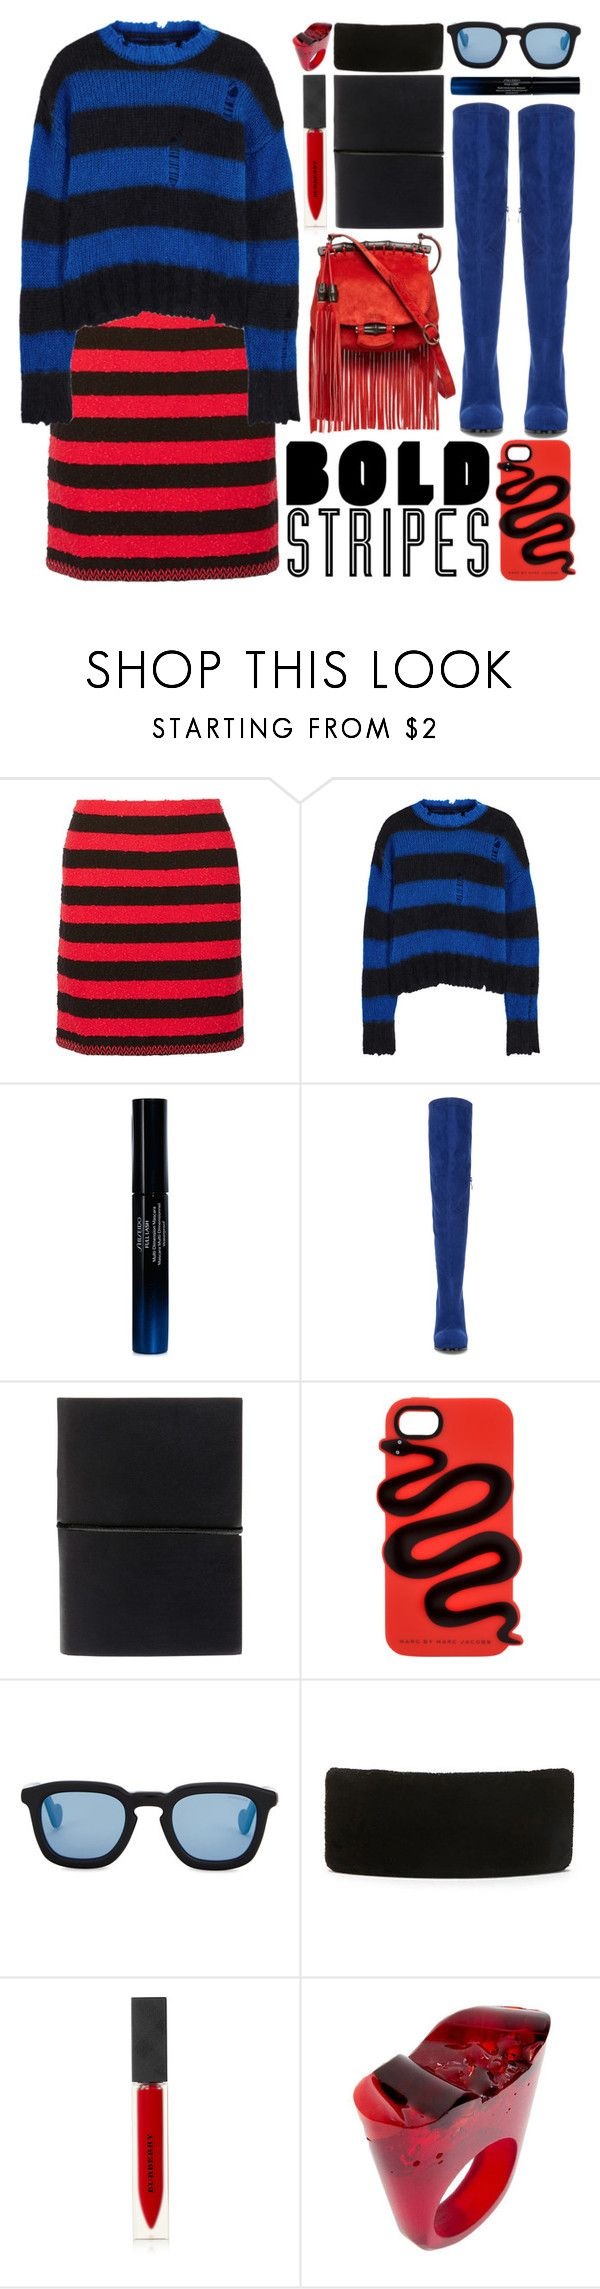 """""""so bold"""" by foundlostme ❤ liked on Polyvore featuring Sonia Rykiel, Filles à papa, Shiseido, Two Lips, Marc by Marc Jacobs, Moncler, Forever 21, Burberry, Pasionae and BoldStripes"""